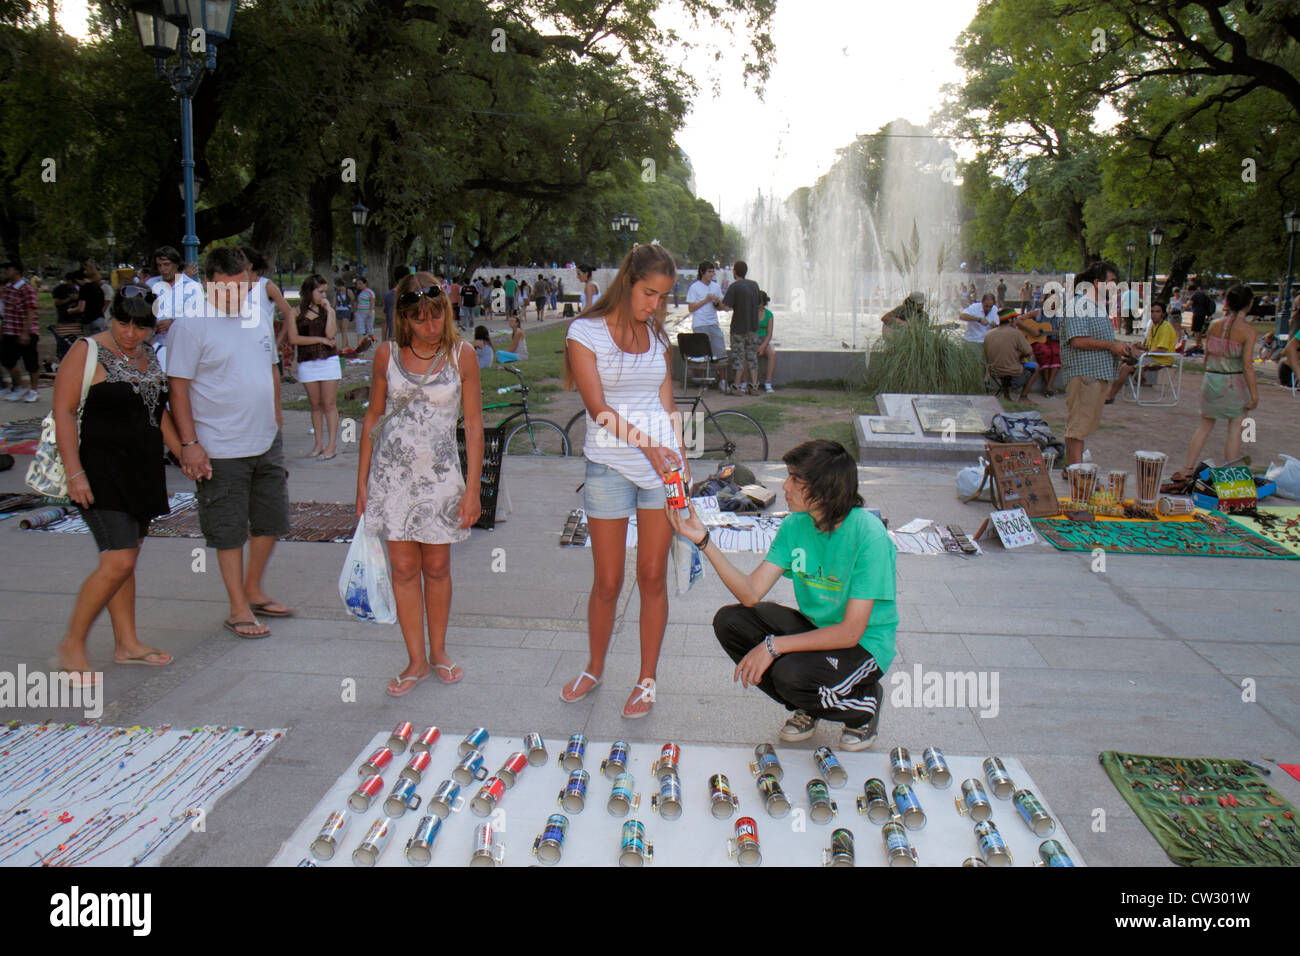 Mendoza Argentina Plaza Independencia public park fountain green space crowd crowded stroll fountain vendor shopping - Stock Image